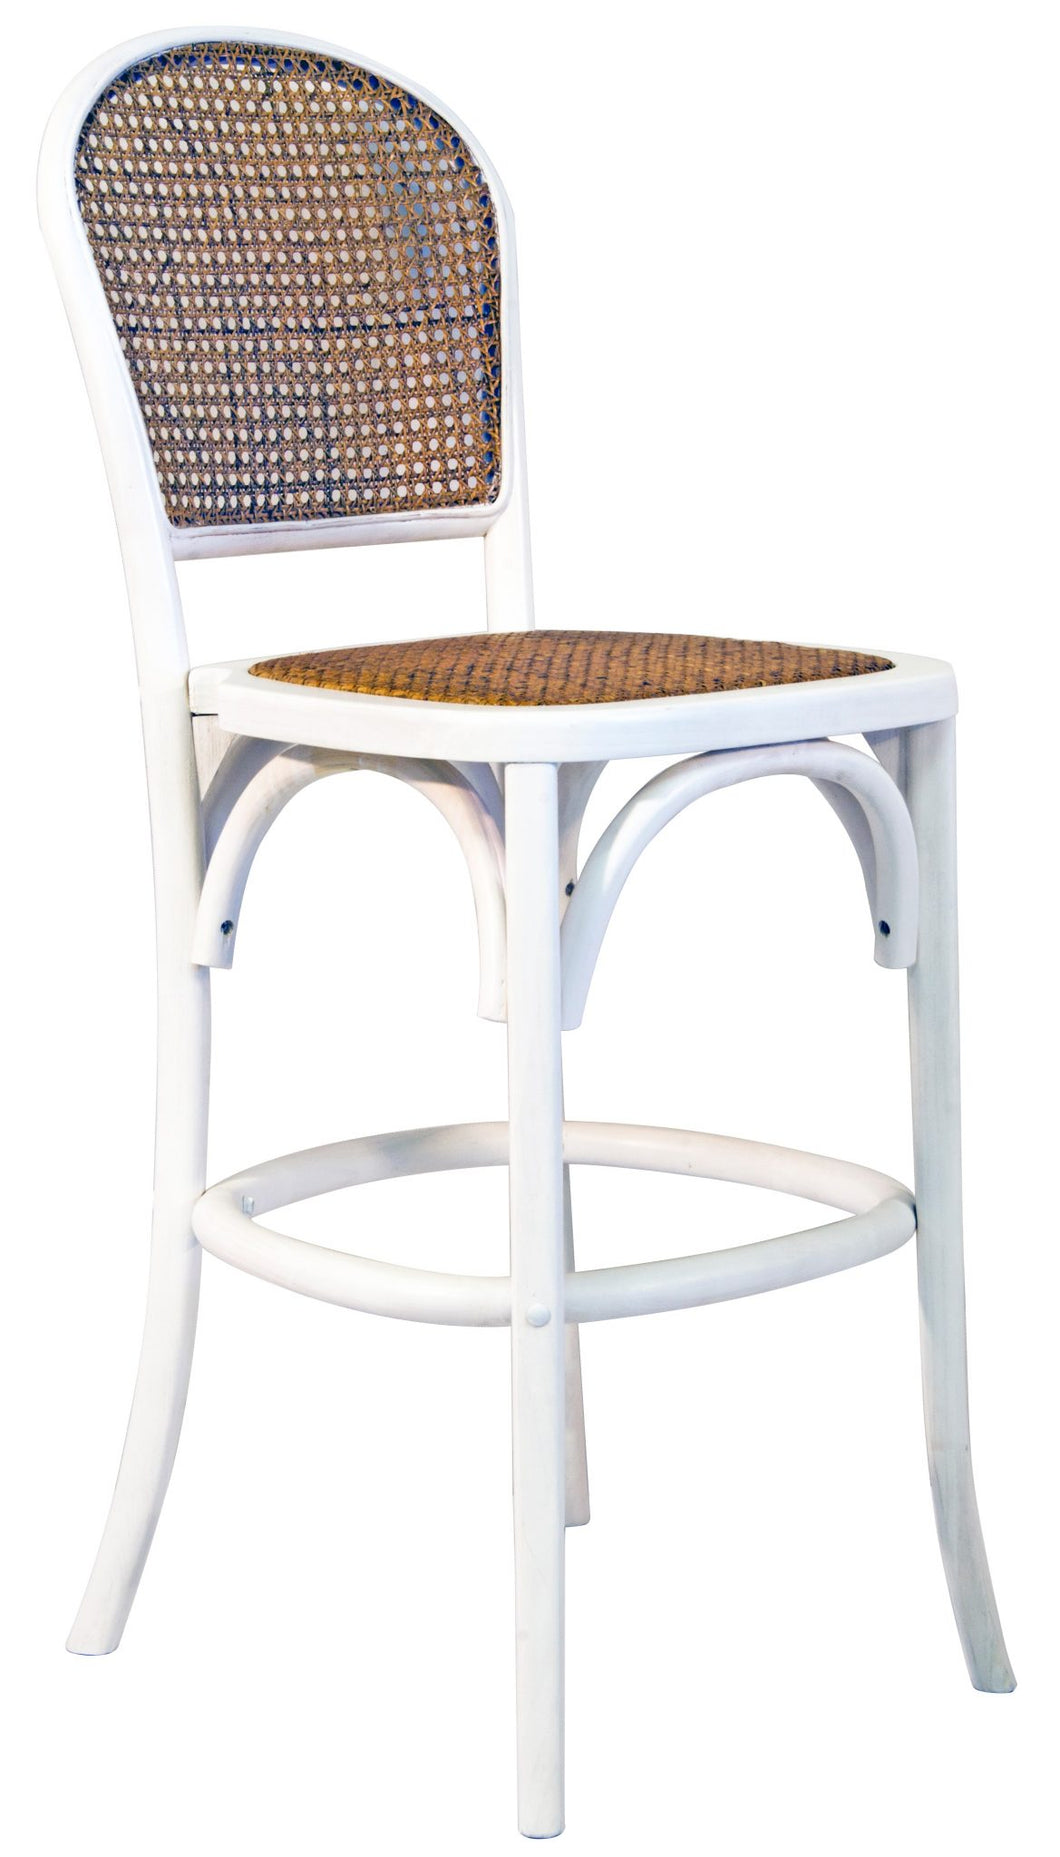 Dunbar Rattan Stool - White-Find It Style It Home